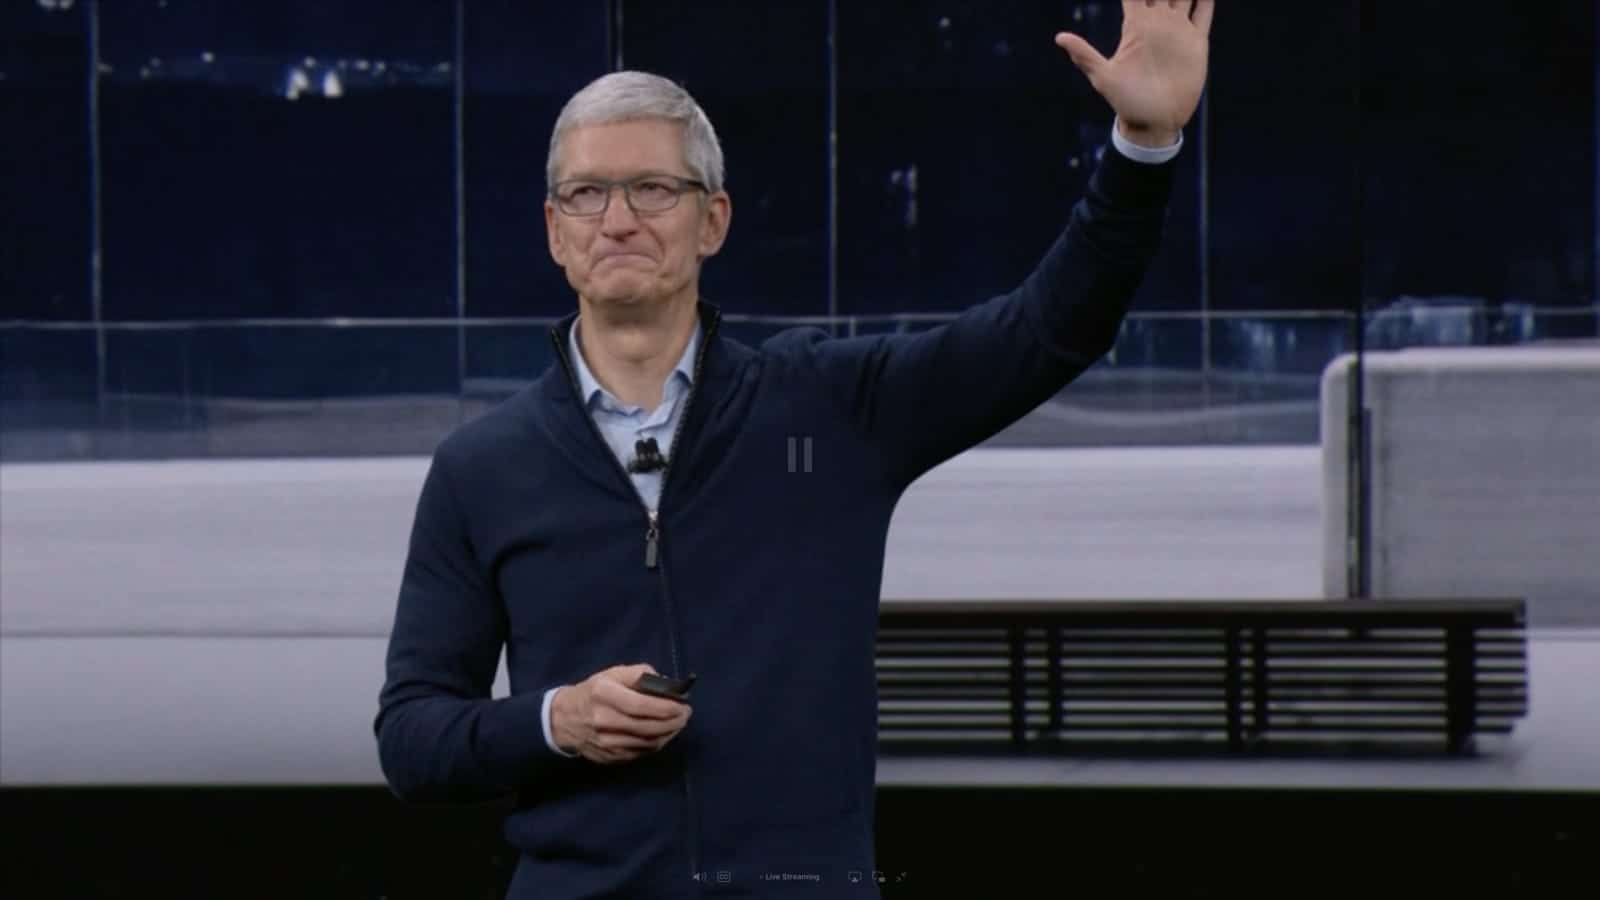 Tim Cook still hid a few surprises up his sleeve for the iPhone X event.